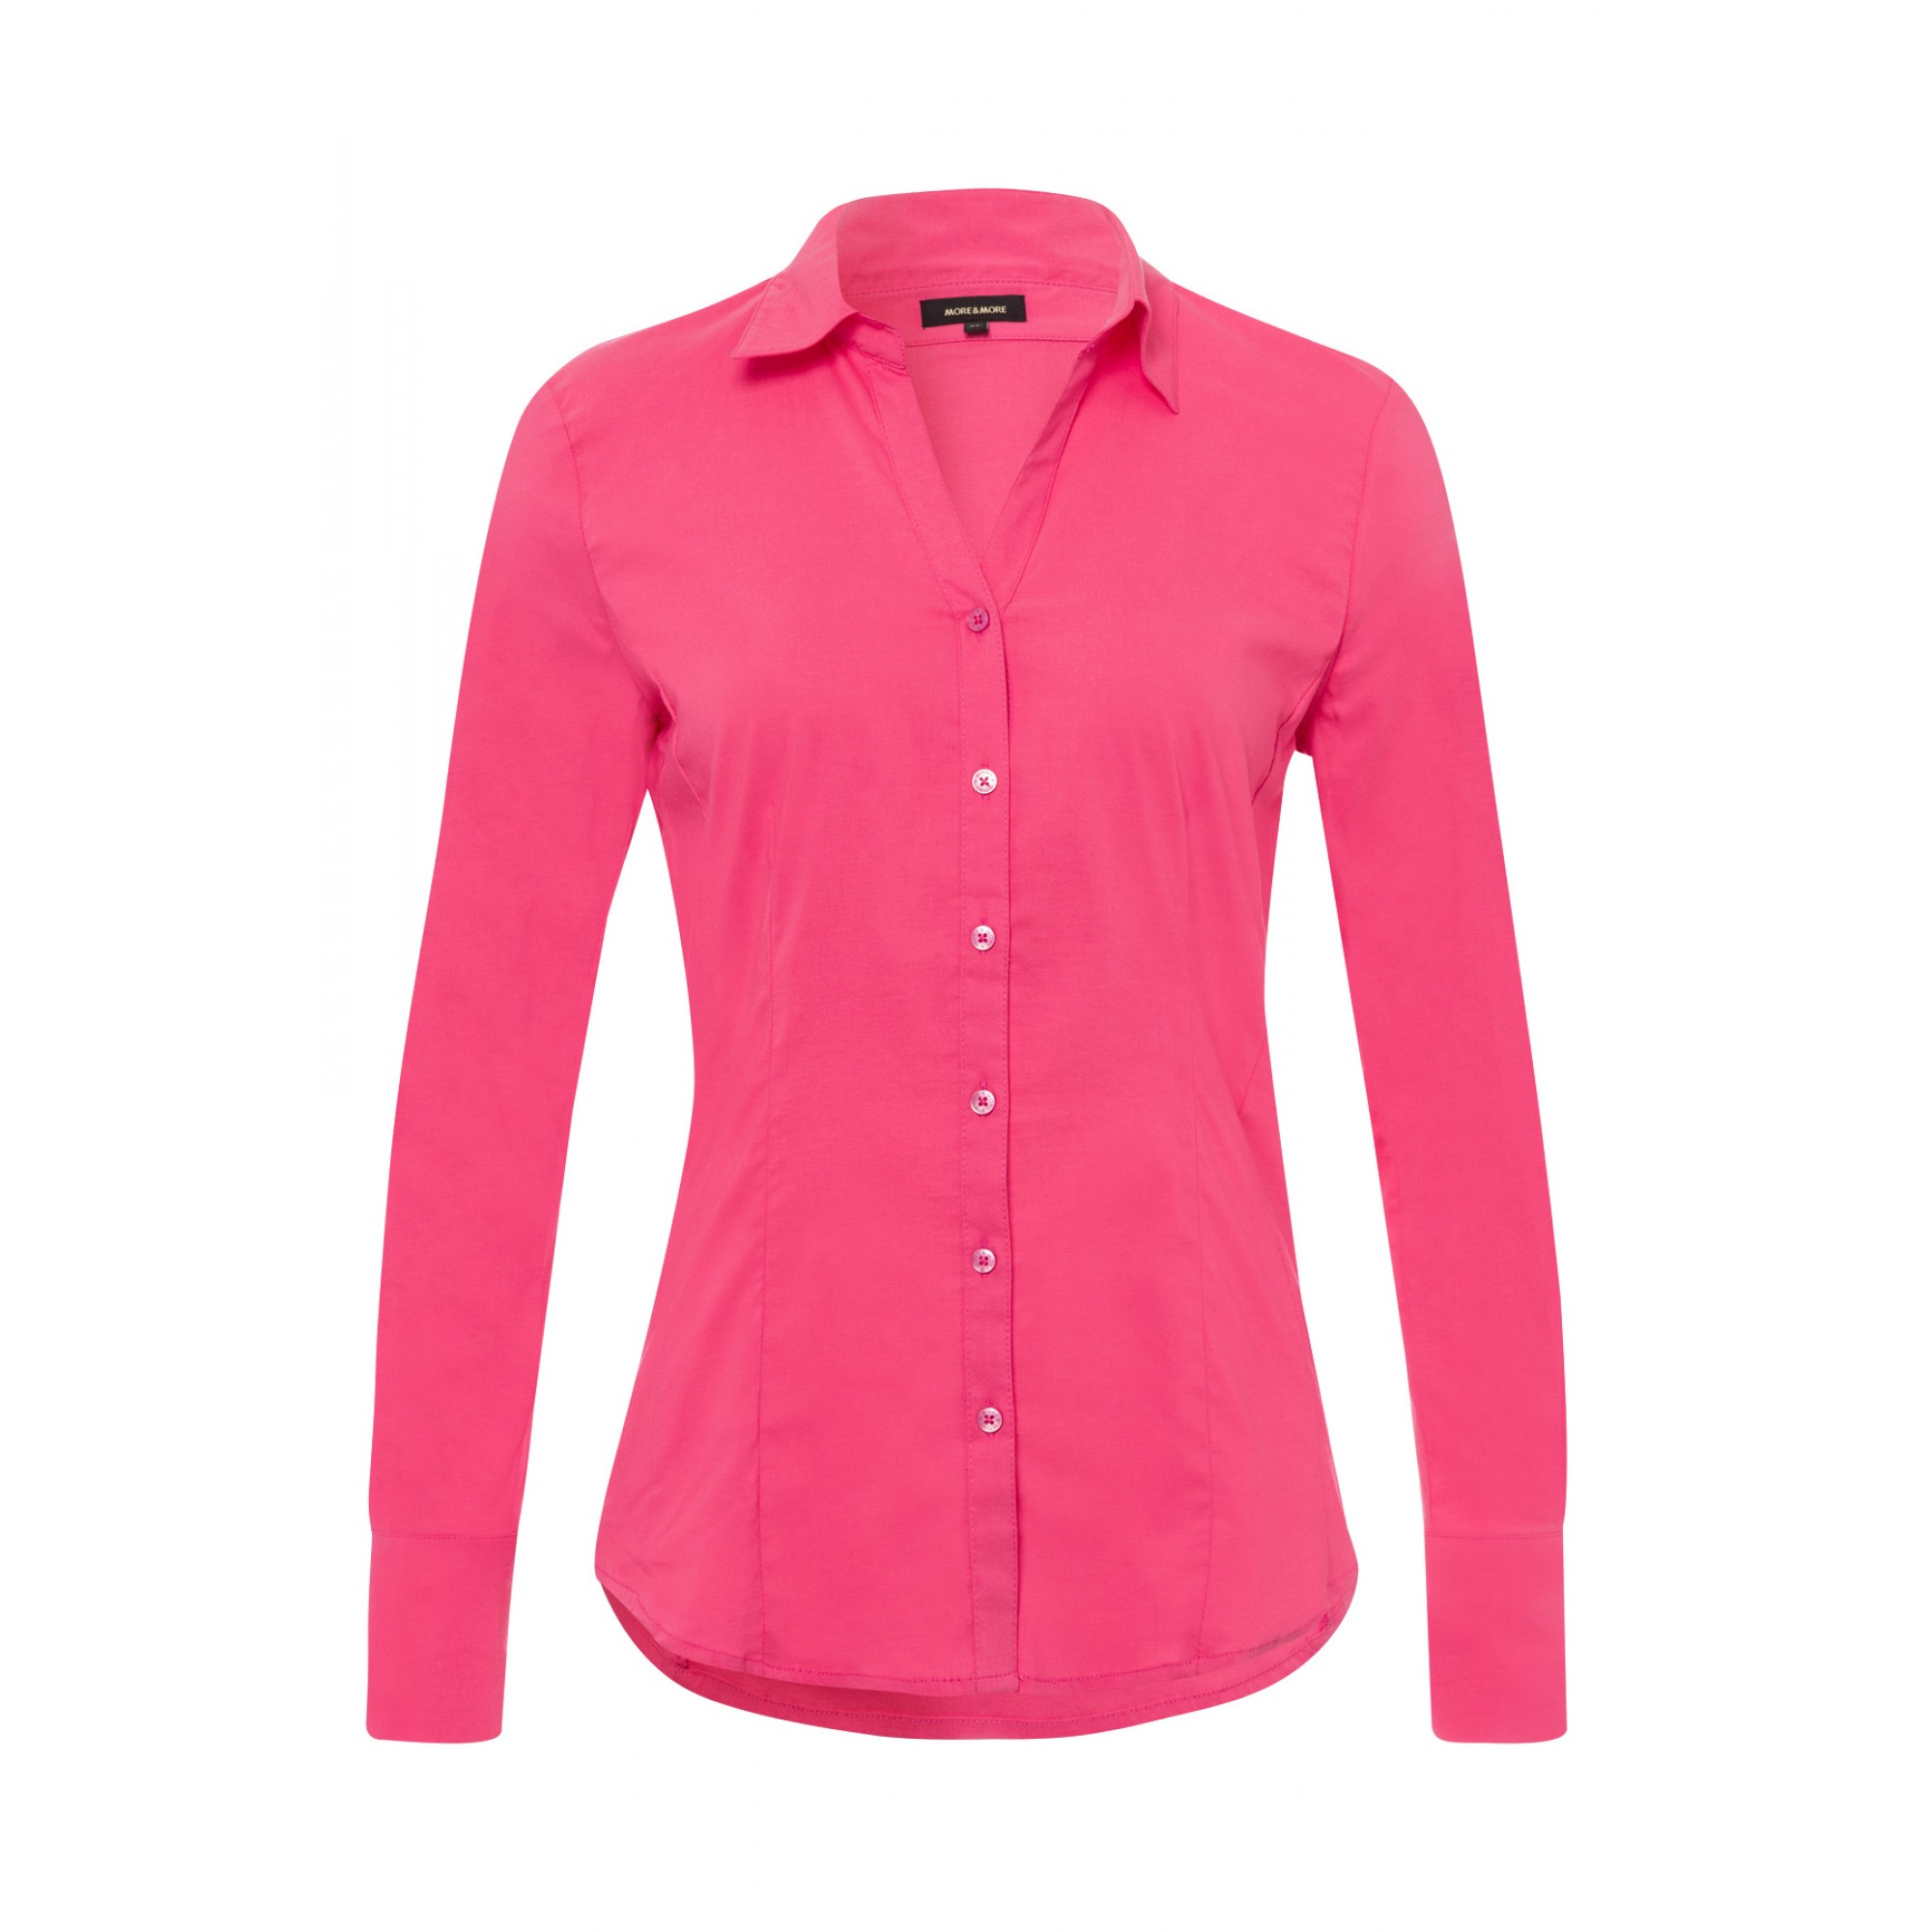 Businessbluse, mild pink 01122572-0833 1